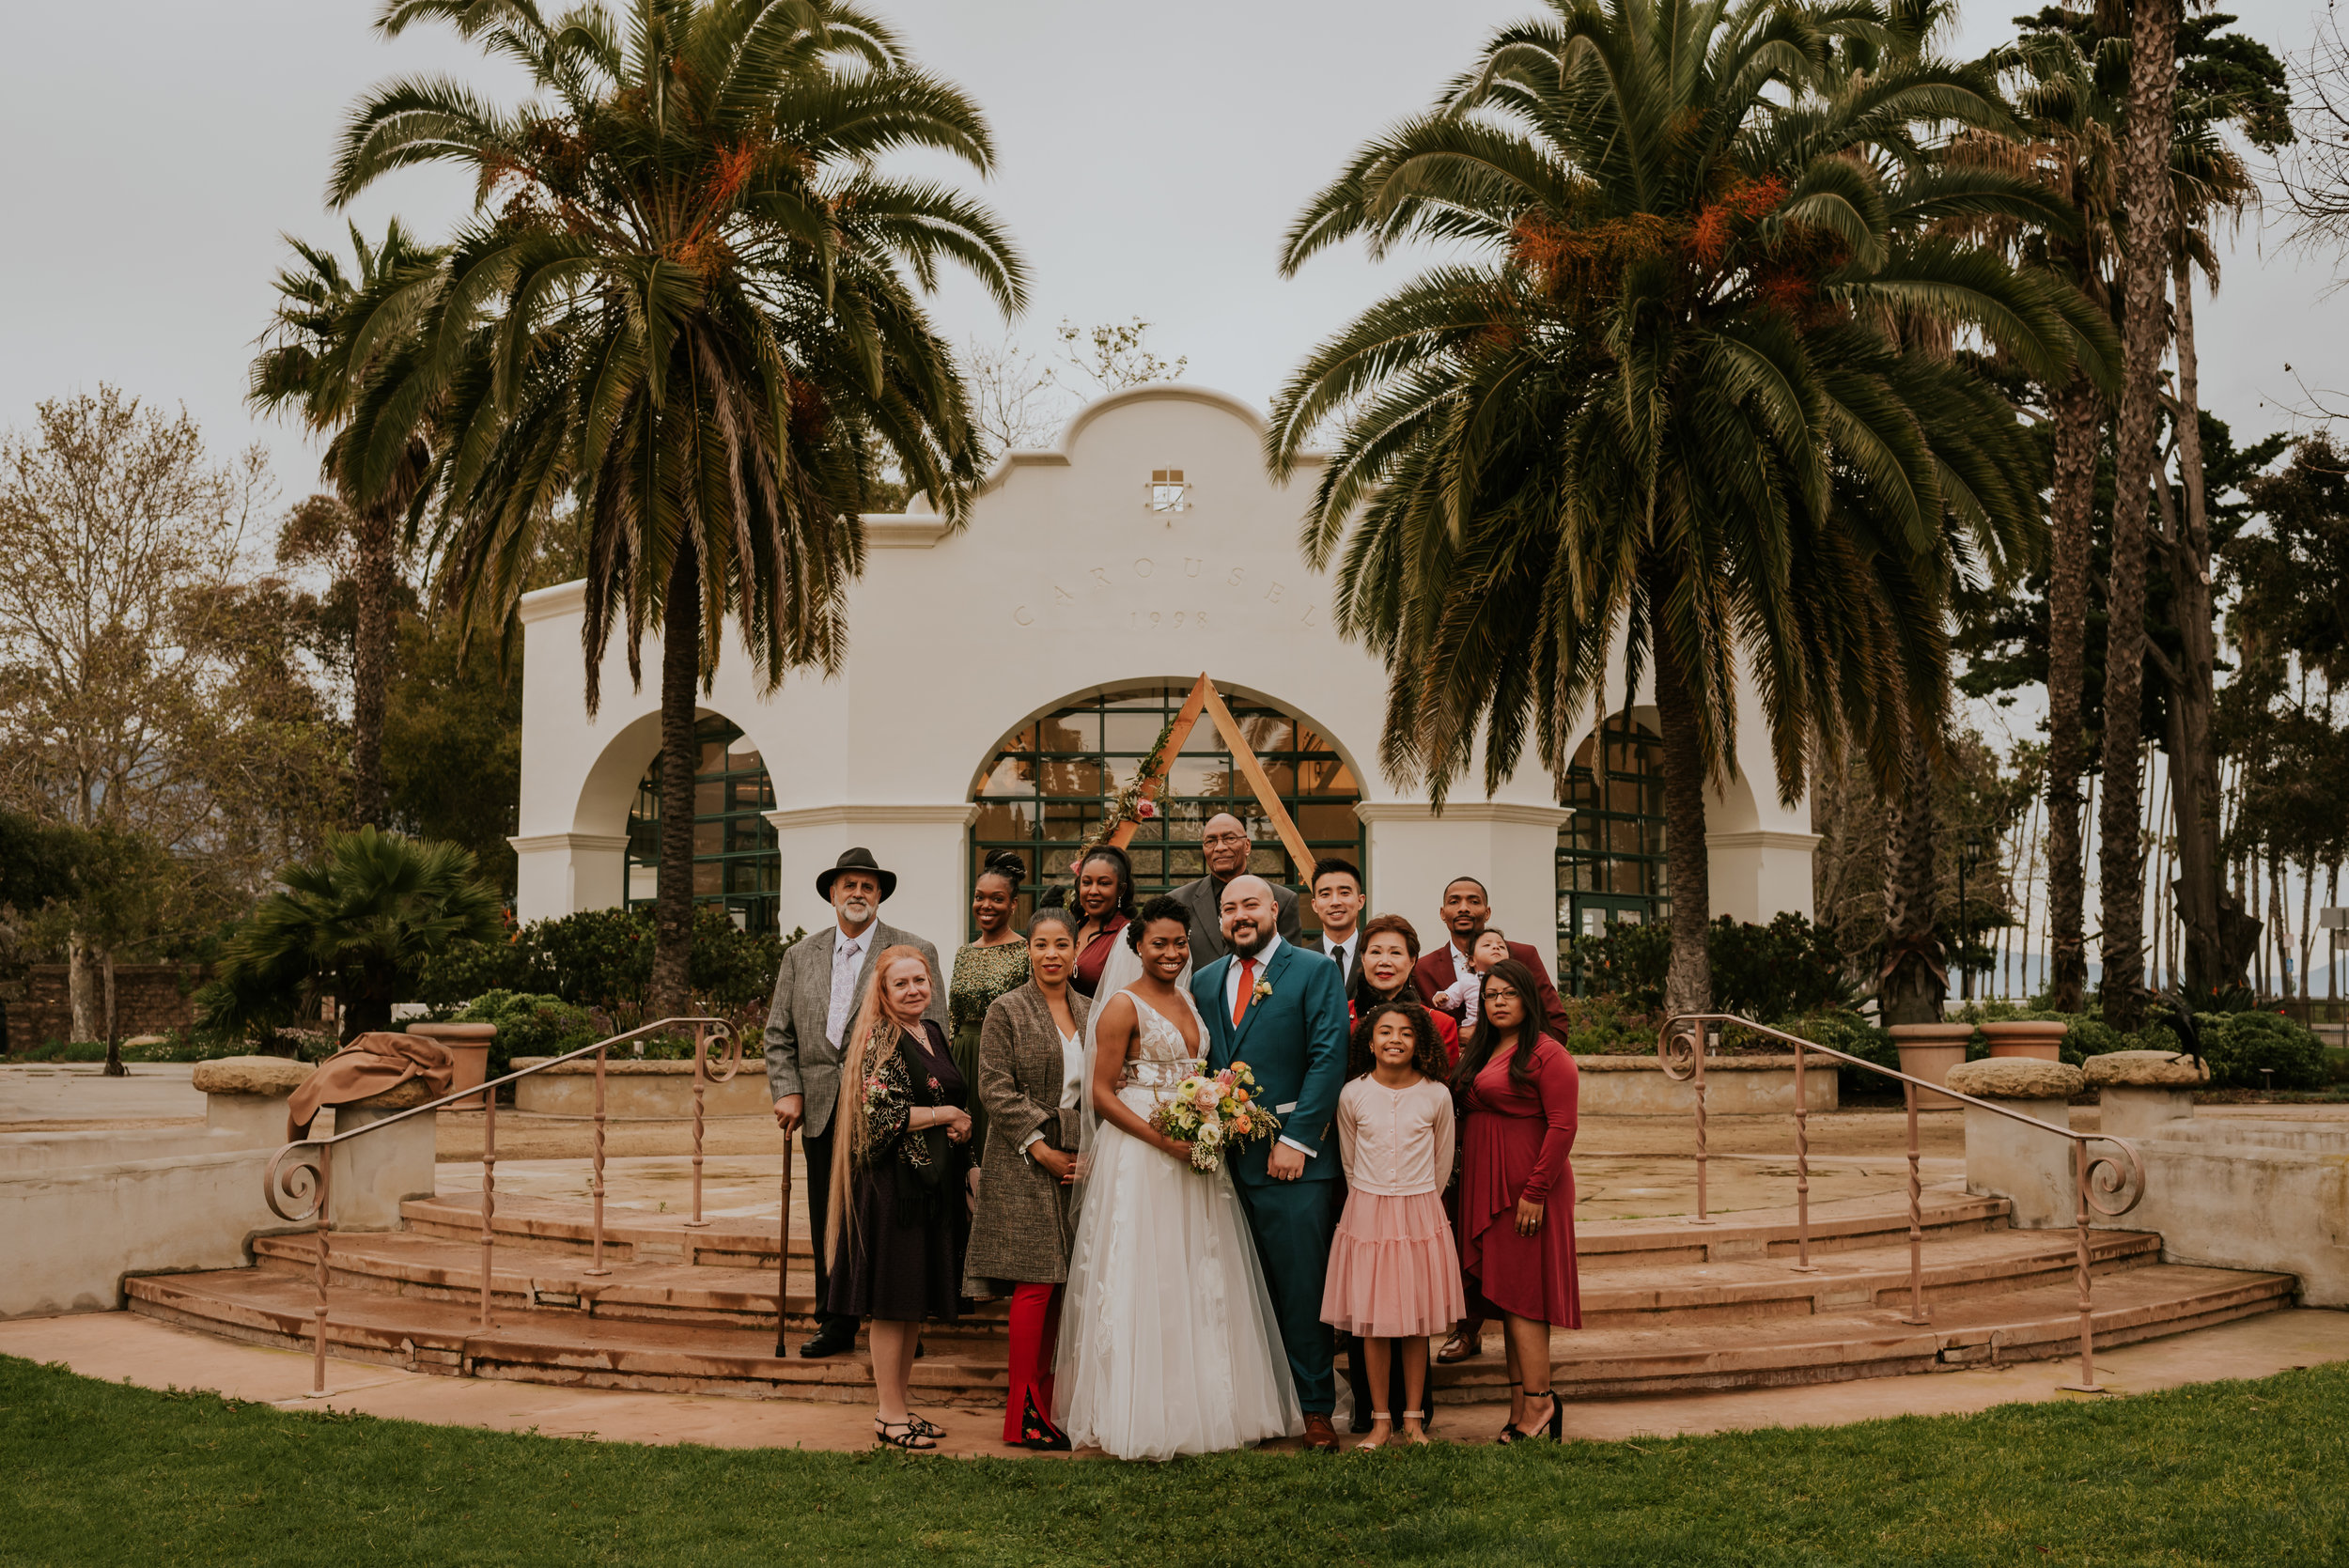 Santa Barbara Wedding at the Carousel House | Carrie Rogers Photography